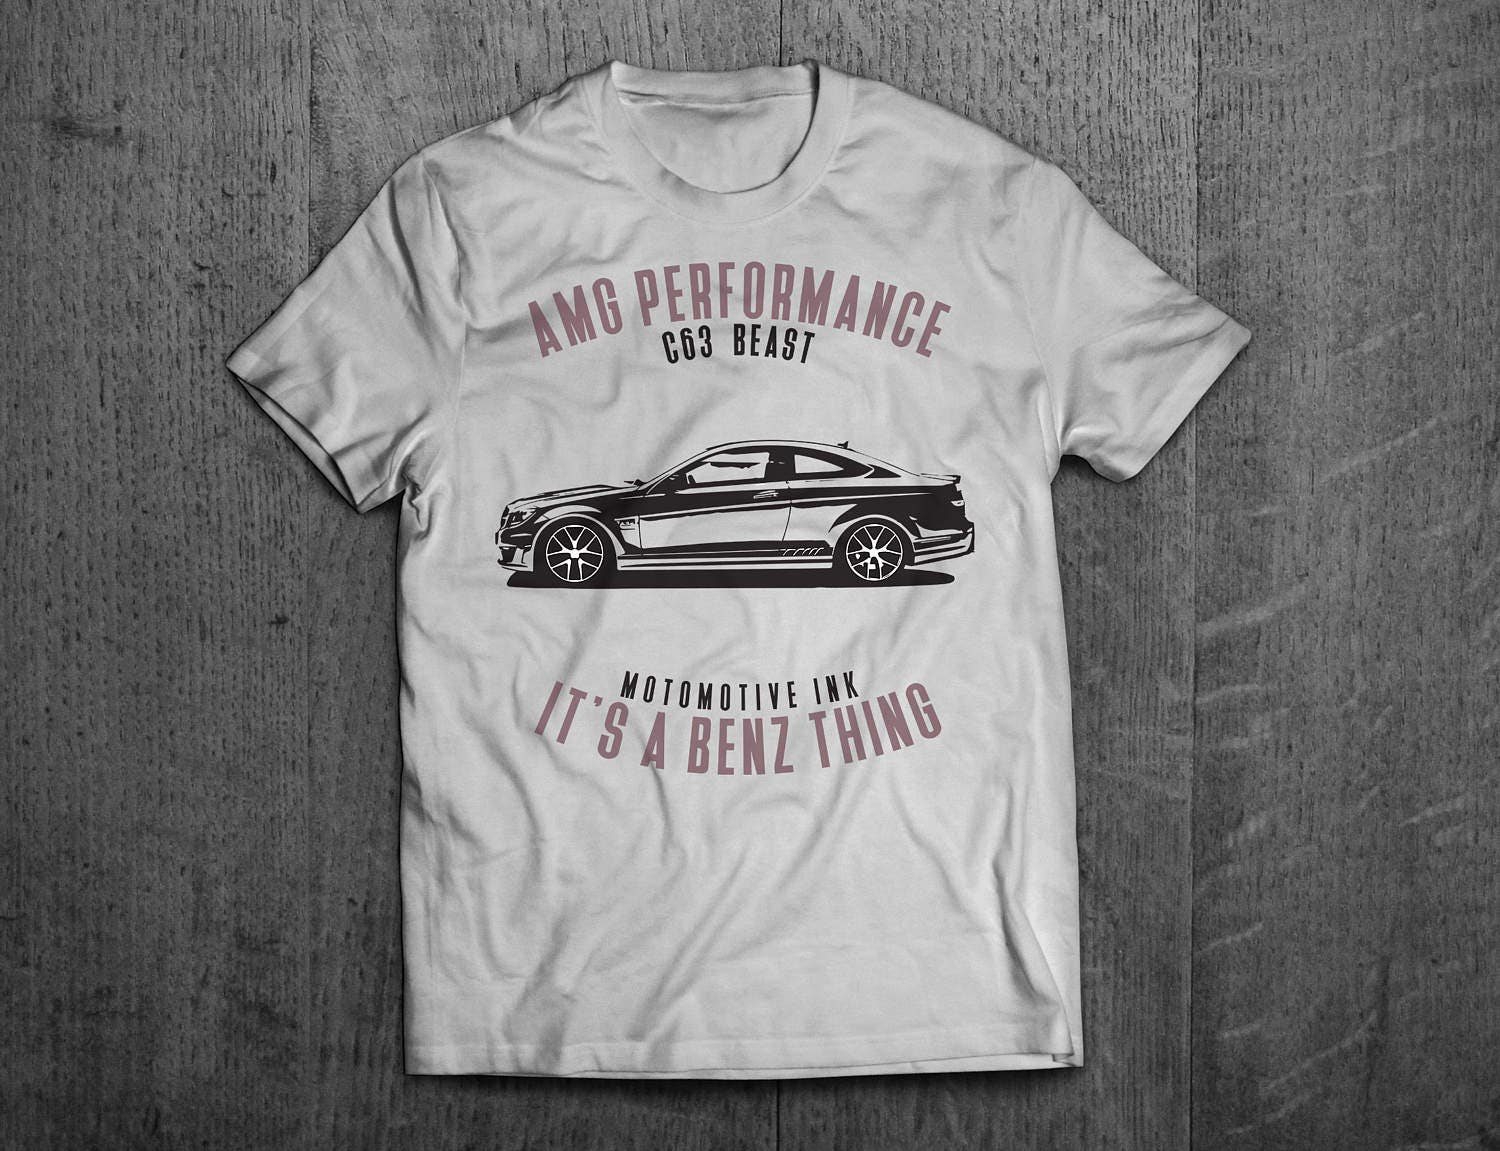 mercedes amg shirts mercedes t shirts c63 shirts cars. Black Bedroom Furniture Sets. Home Design Ideas